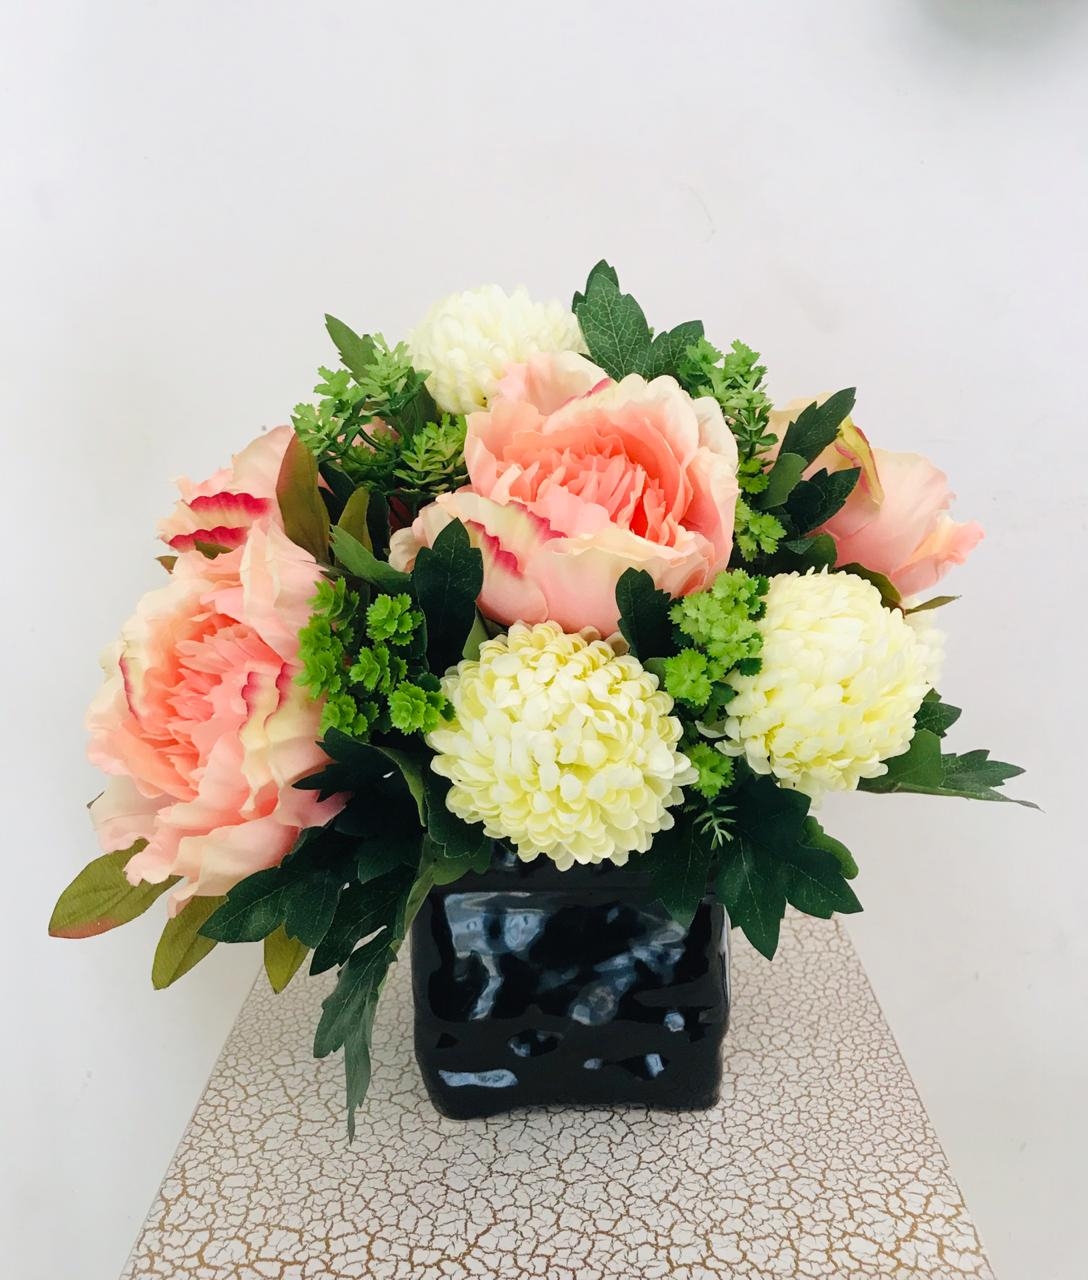 Artificial Flower Arrangement (h:30cm w:29cm)